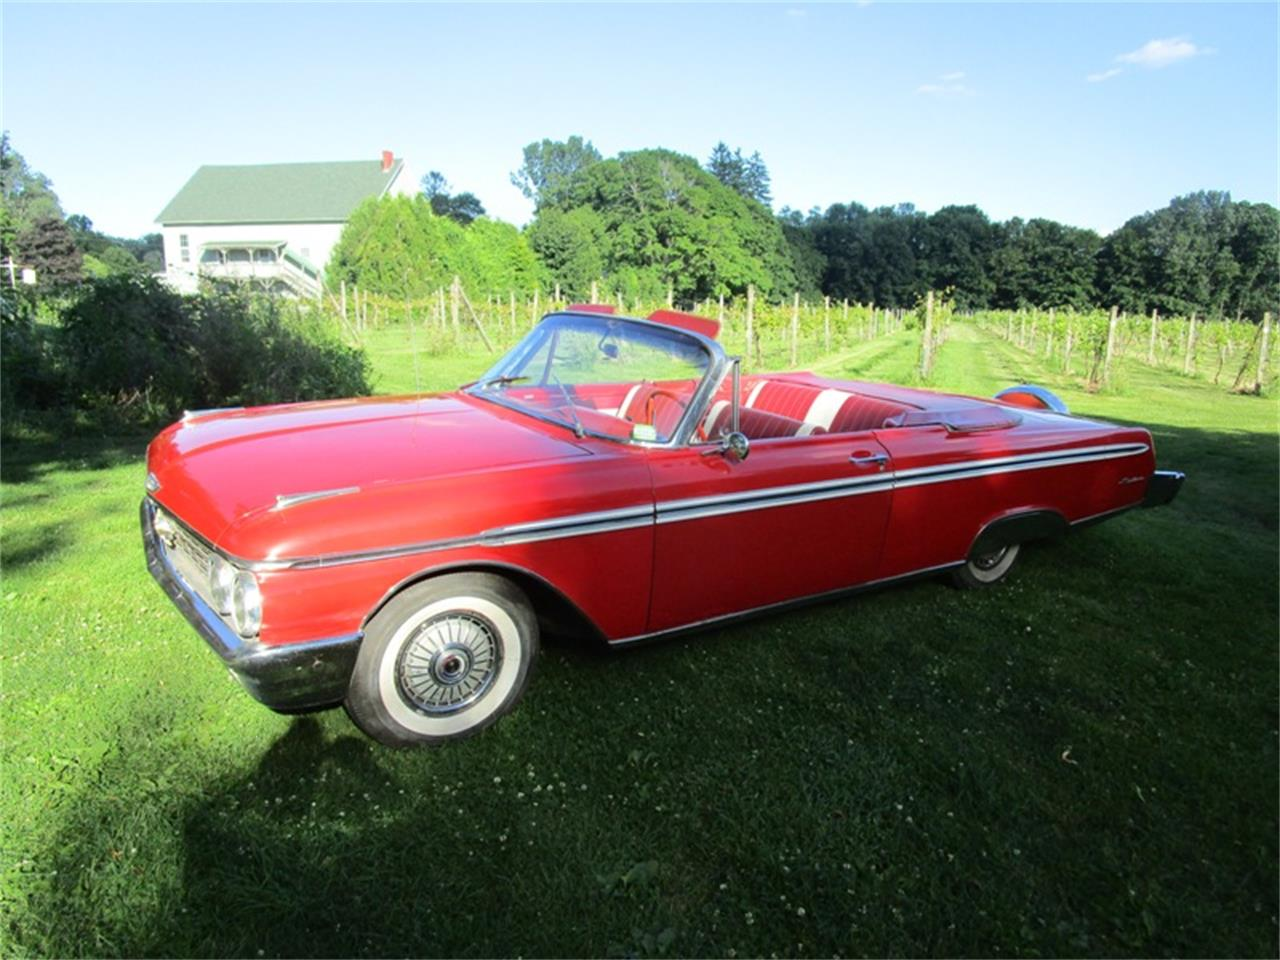 1962 Ford Galaxie 500 Sunliner for sale in Middletown, CT – photo 2